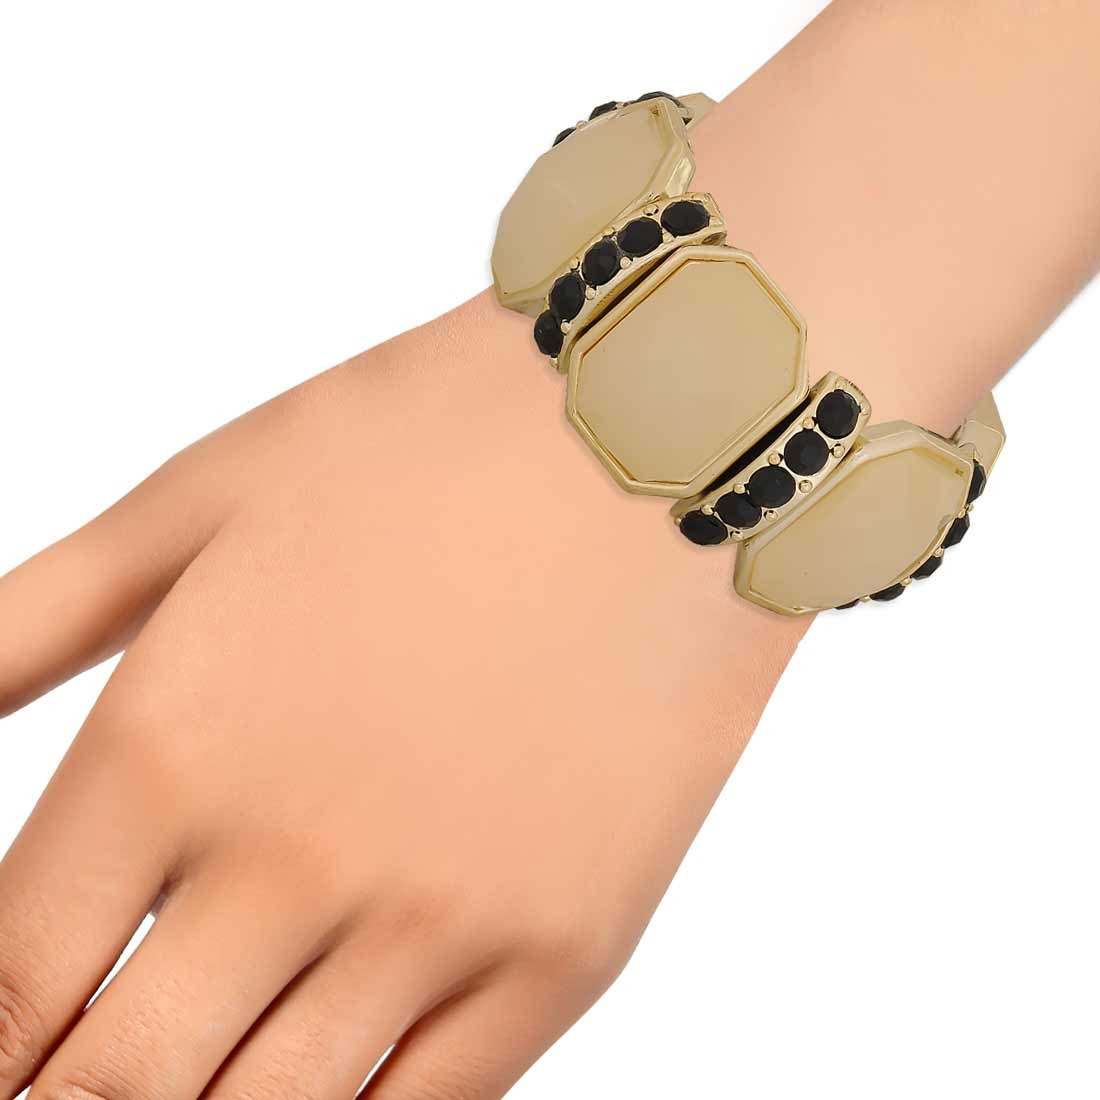 Lively Yellow Black in-Trend Adjustable College Bracelet Alloy Maayra MY7751